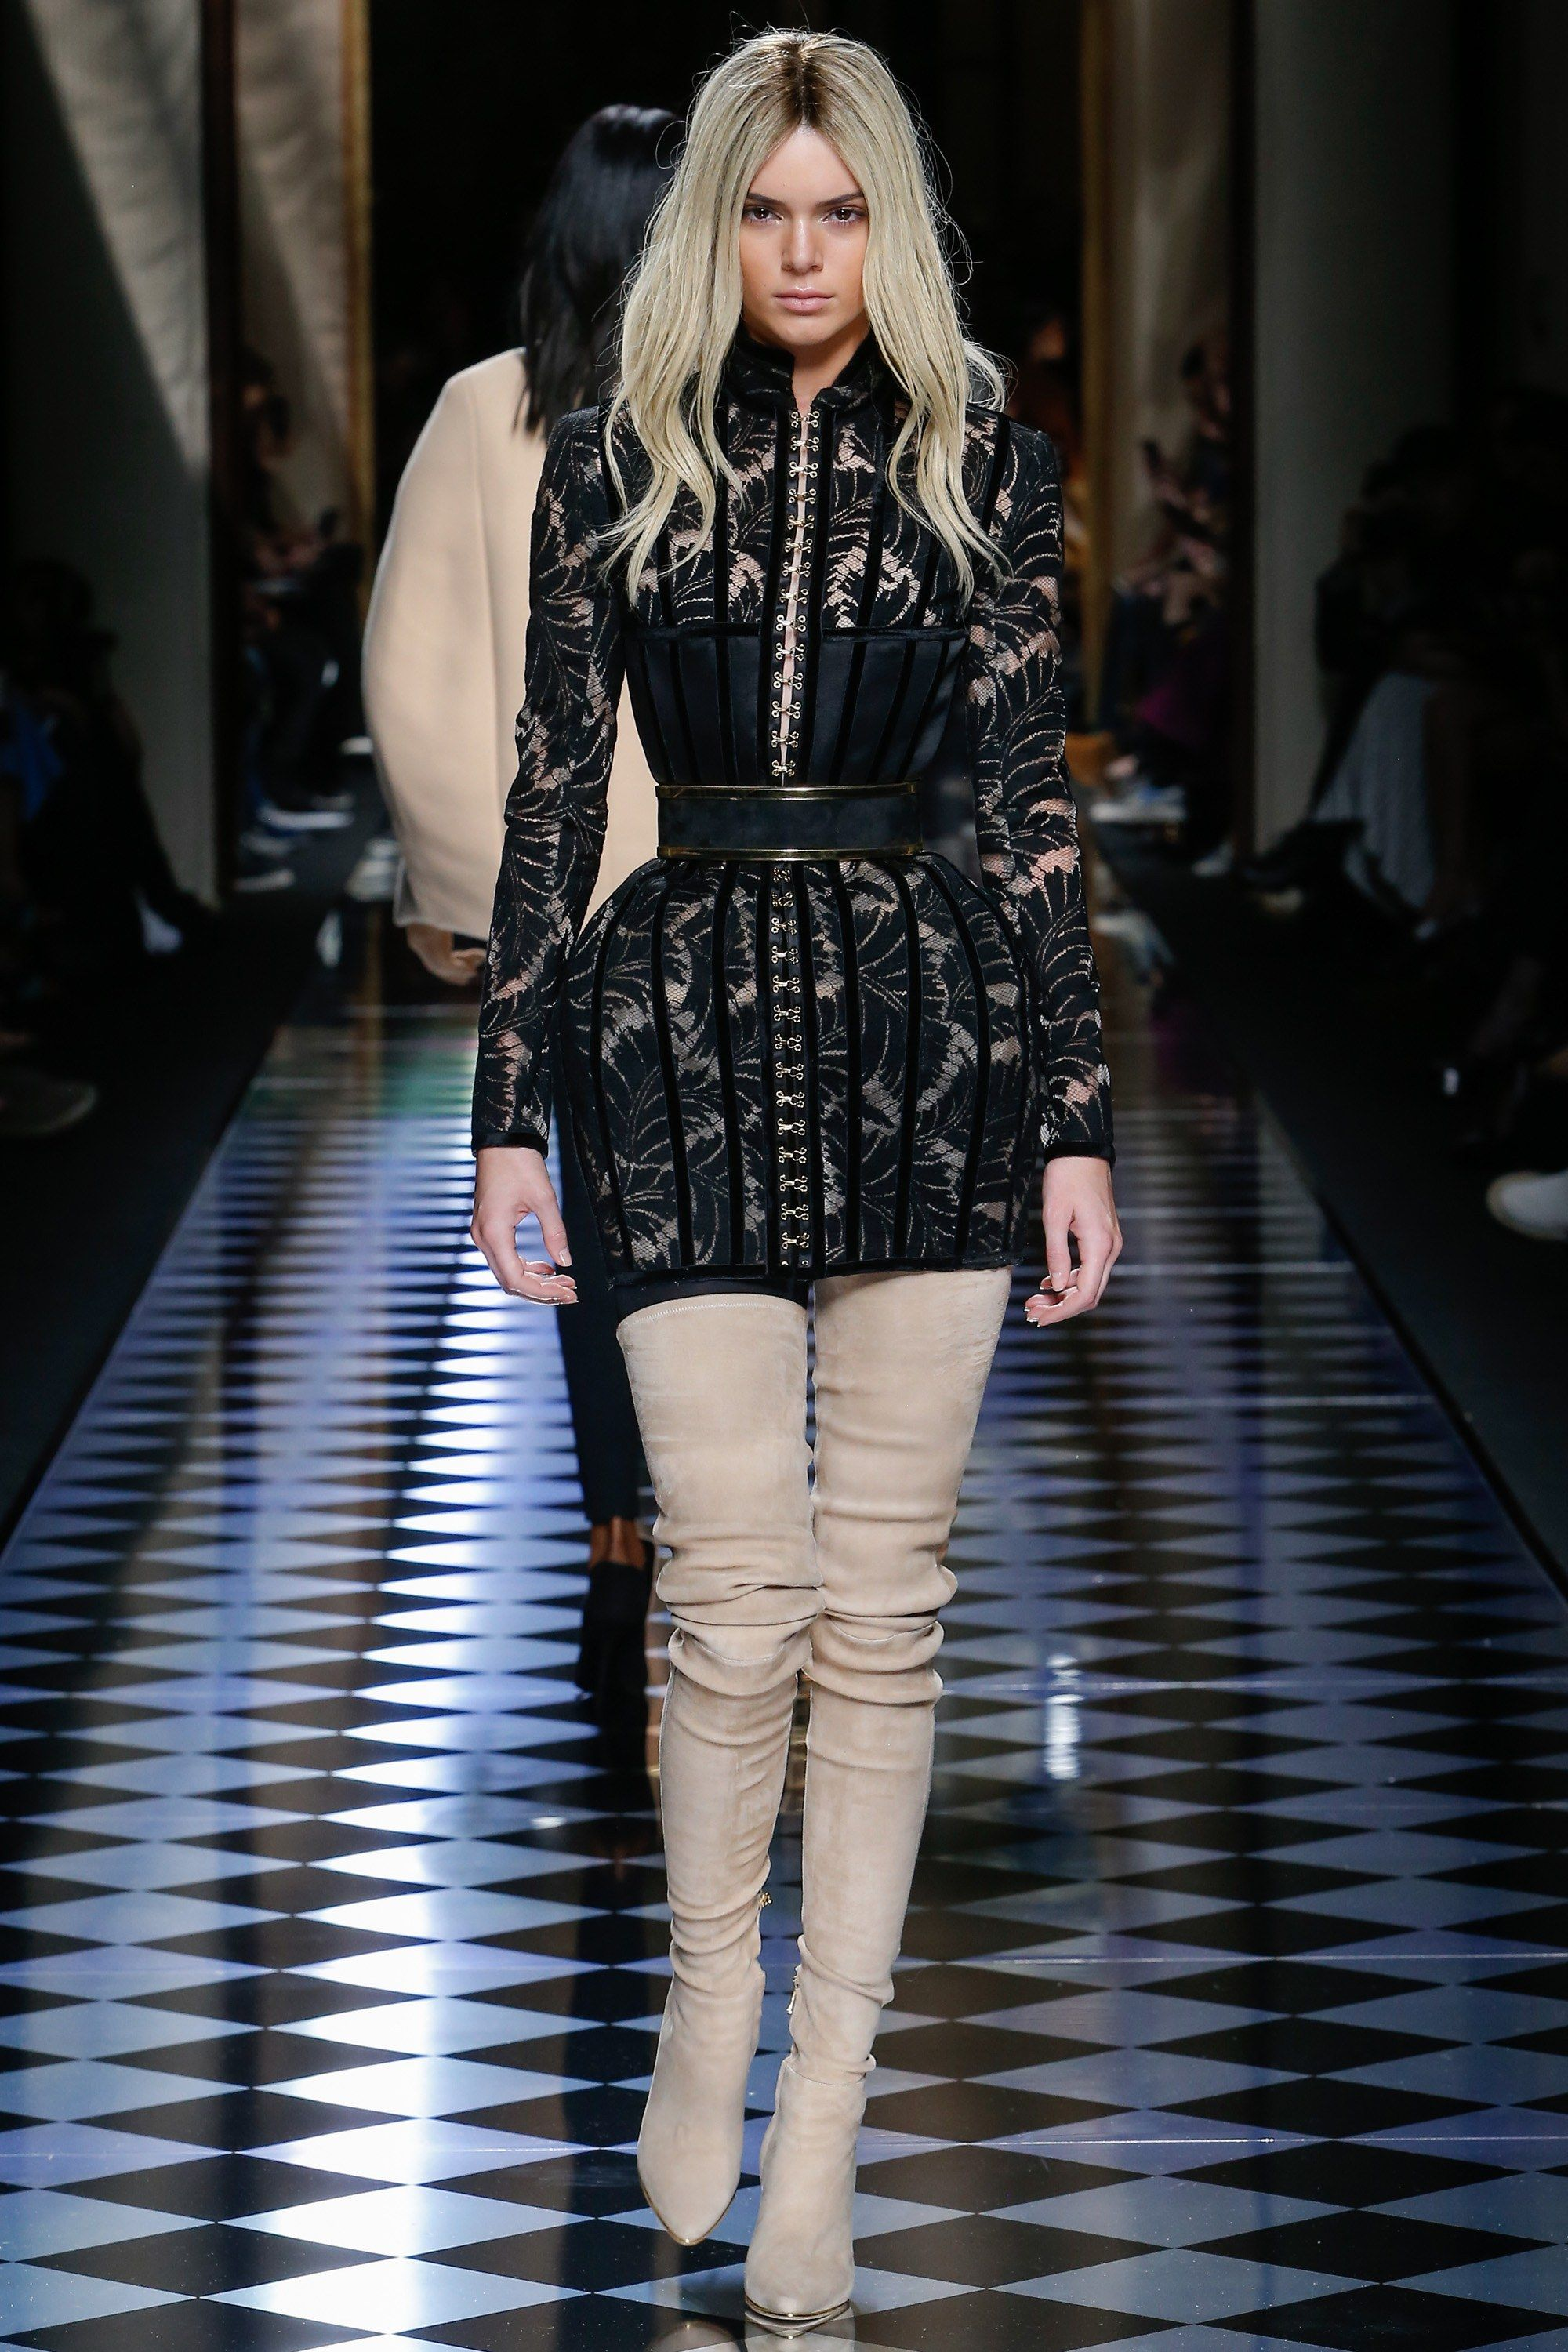 4a4b9e73 Balmain | Fall/Winter Ready-To-Wear Collection via Designer Olivier  Rousteing | Modeled by Kendall Jenner | March 3, 2016; Paris